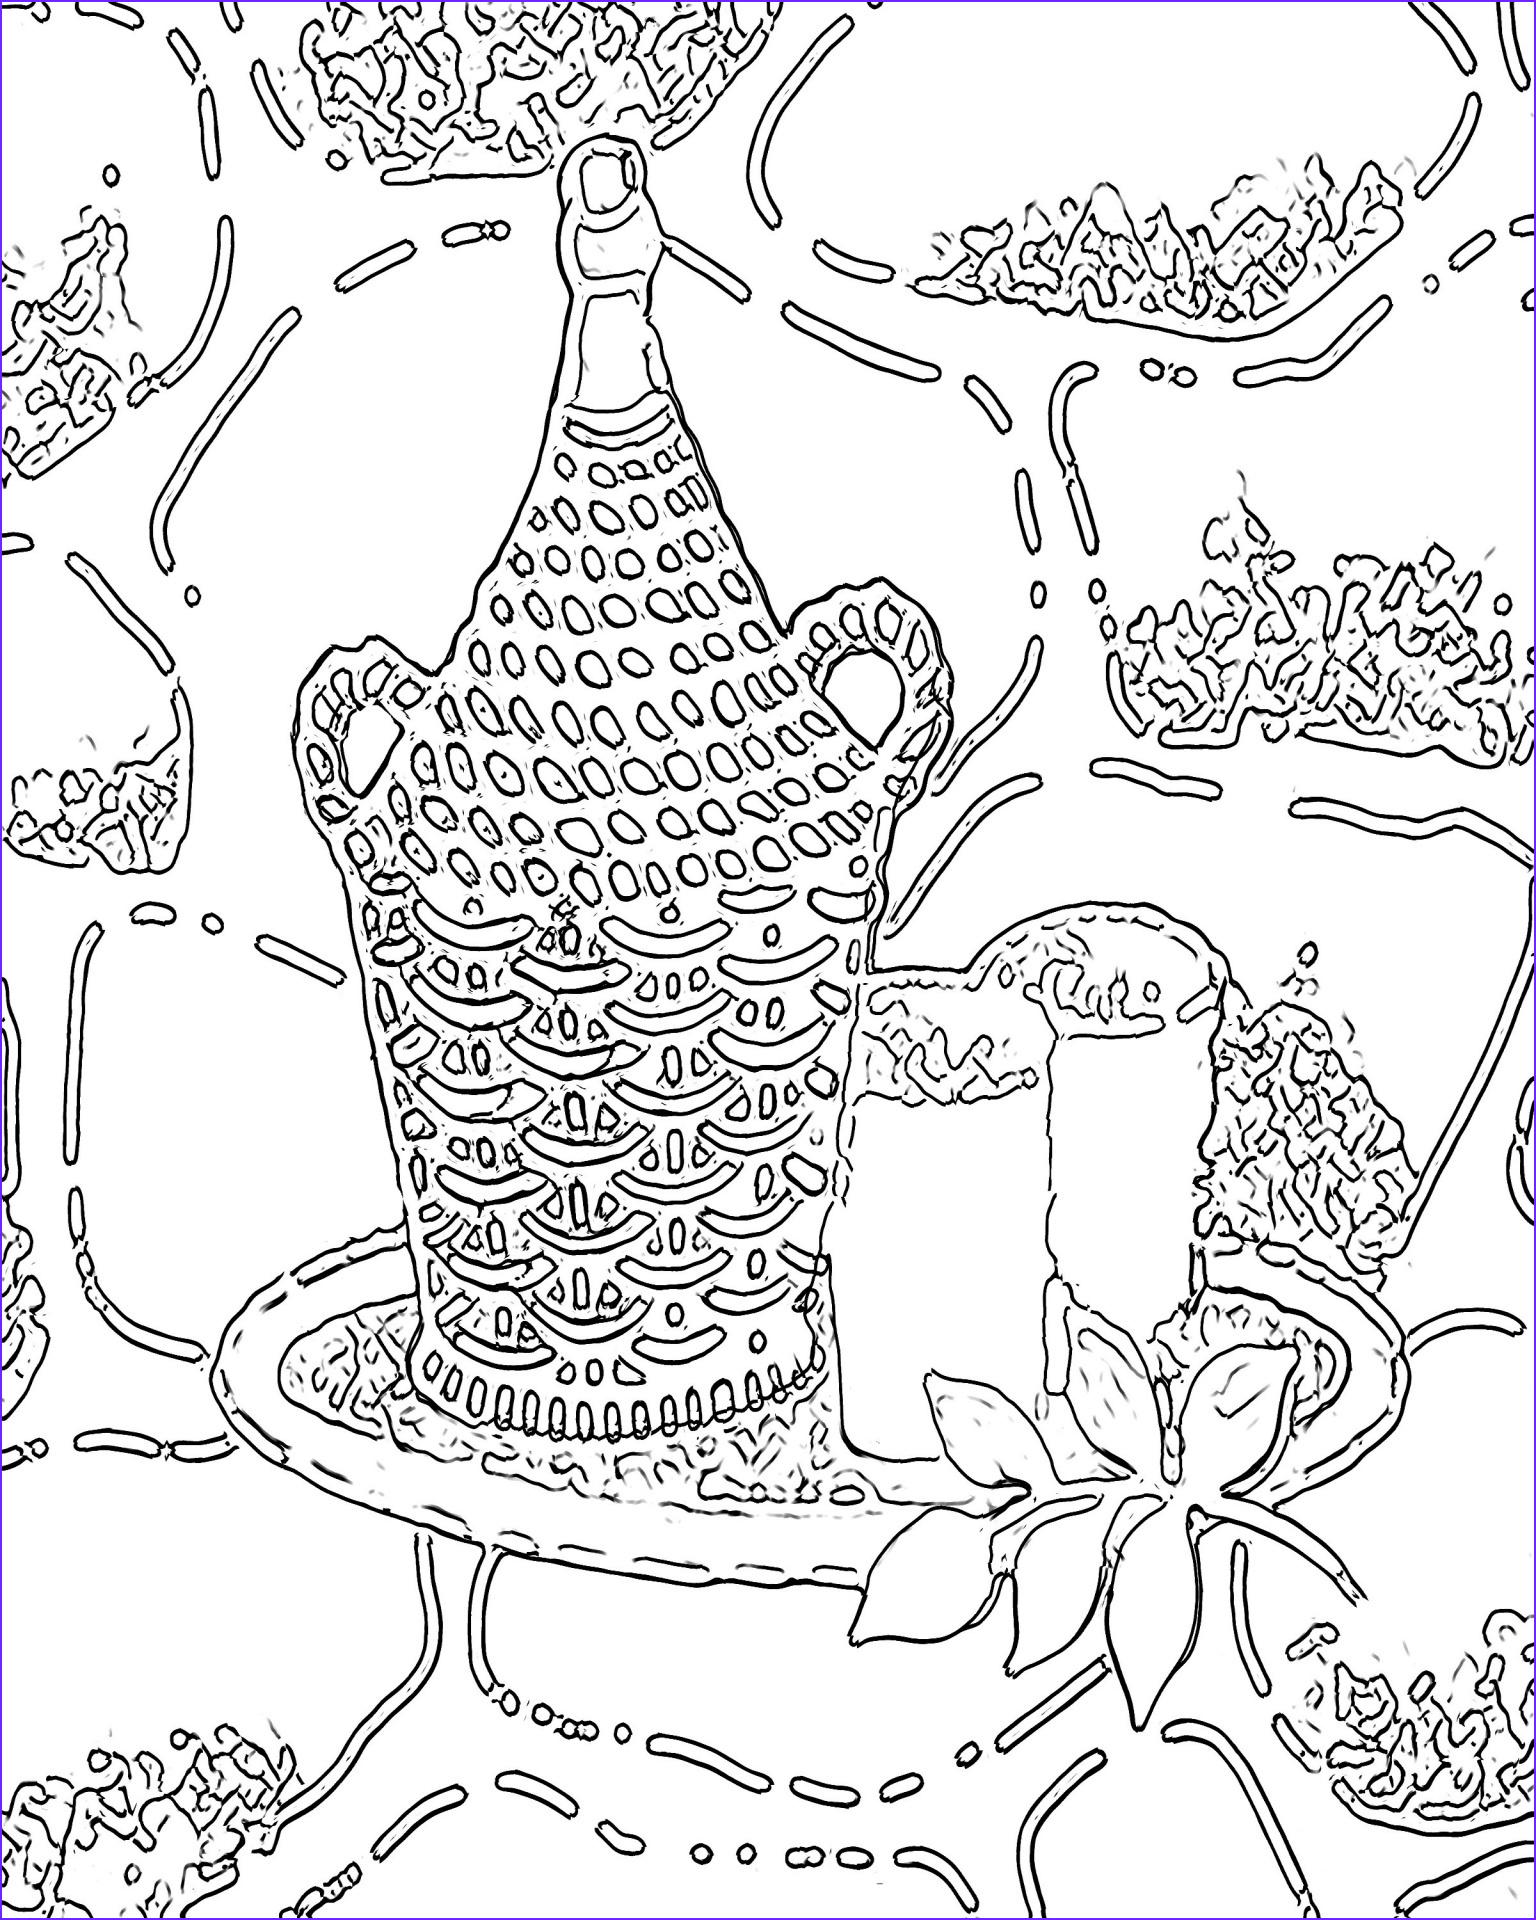 Downloadable Adult Coloring Books Elegant Stock Free Printable Abstract Coloring Pages for Adults